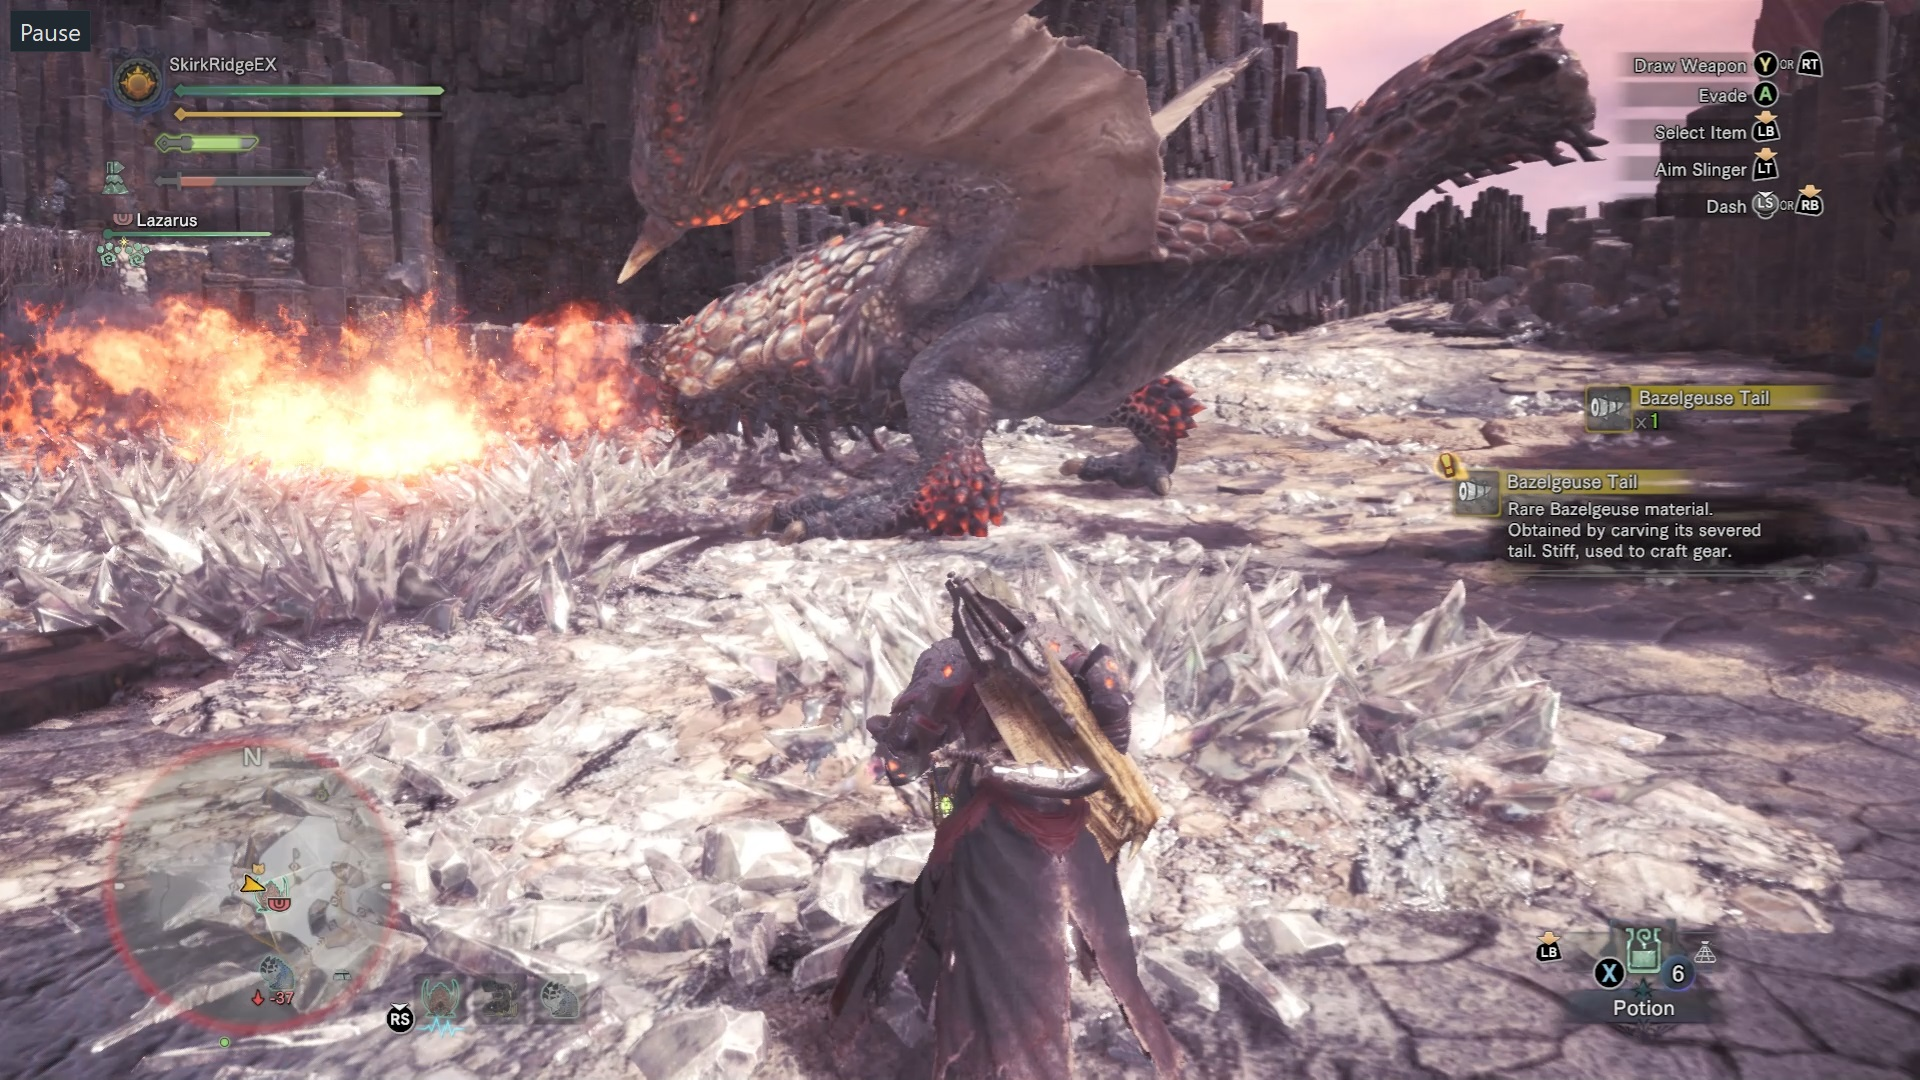 Monster Hunter World Bazelgeuse How To Kill It What Is Its Weakness Rock Paper Shotgun